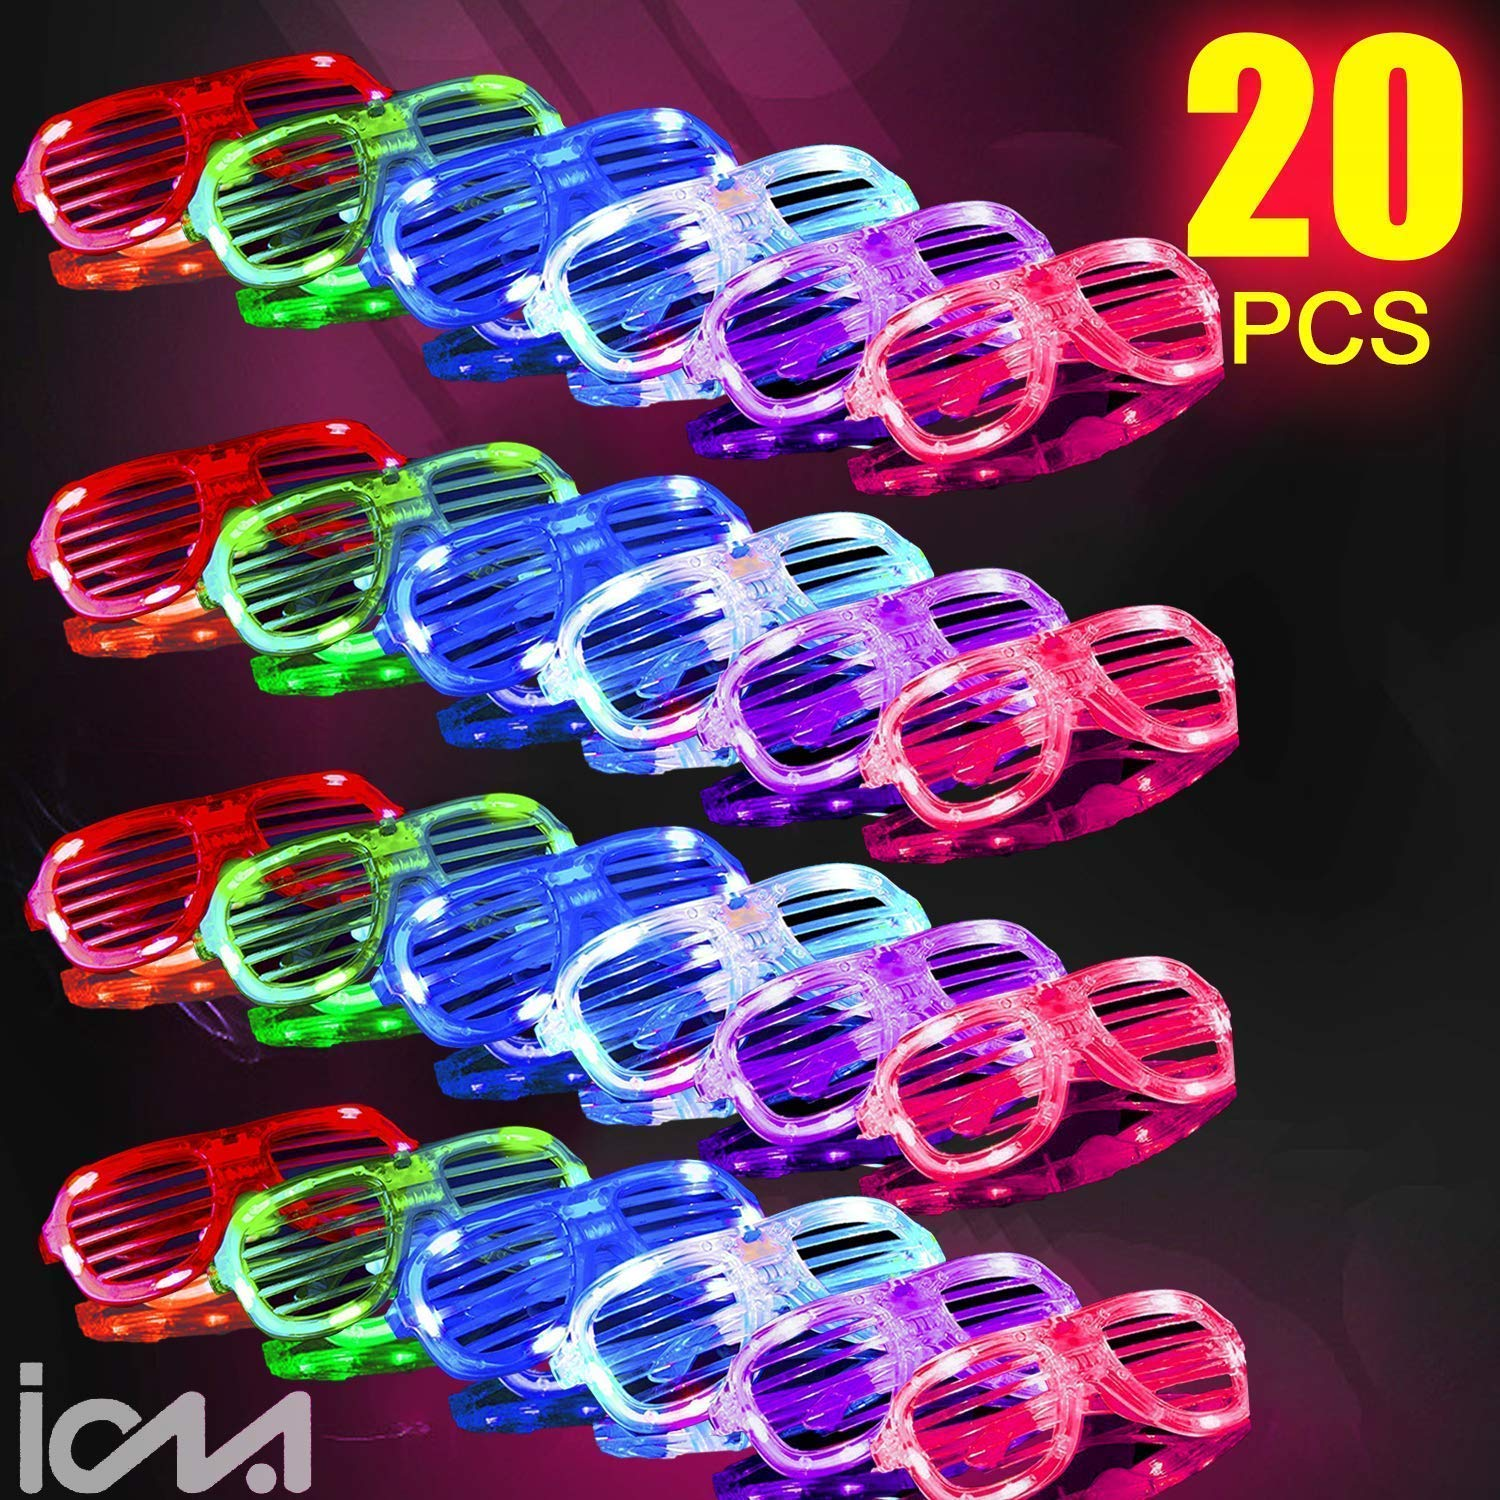 2019 Light Up Glasses,Neon Party Supplies 20 Pack LED Glasses,6 Color LED Sunglasses Shutter Shades Light Up Plastic Shutter Shades for Adults Kids Glow in The Dark Party Favors Rave Party